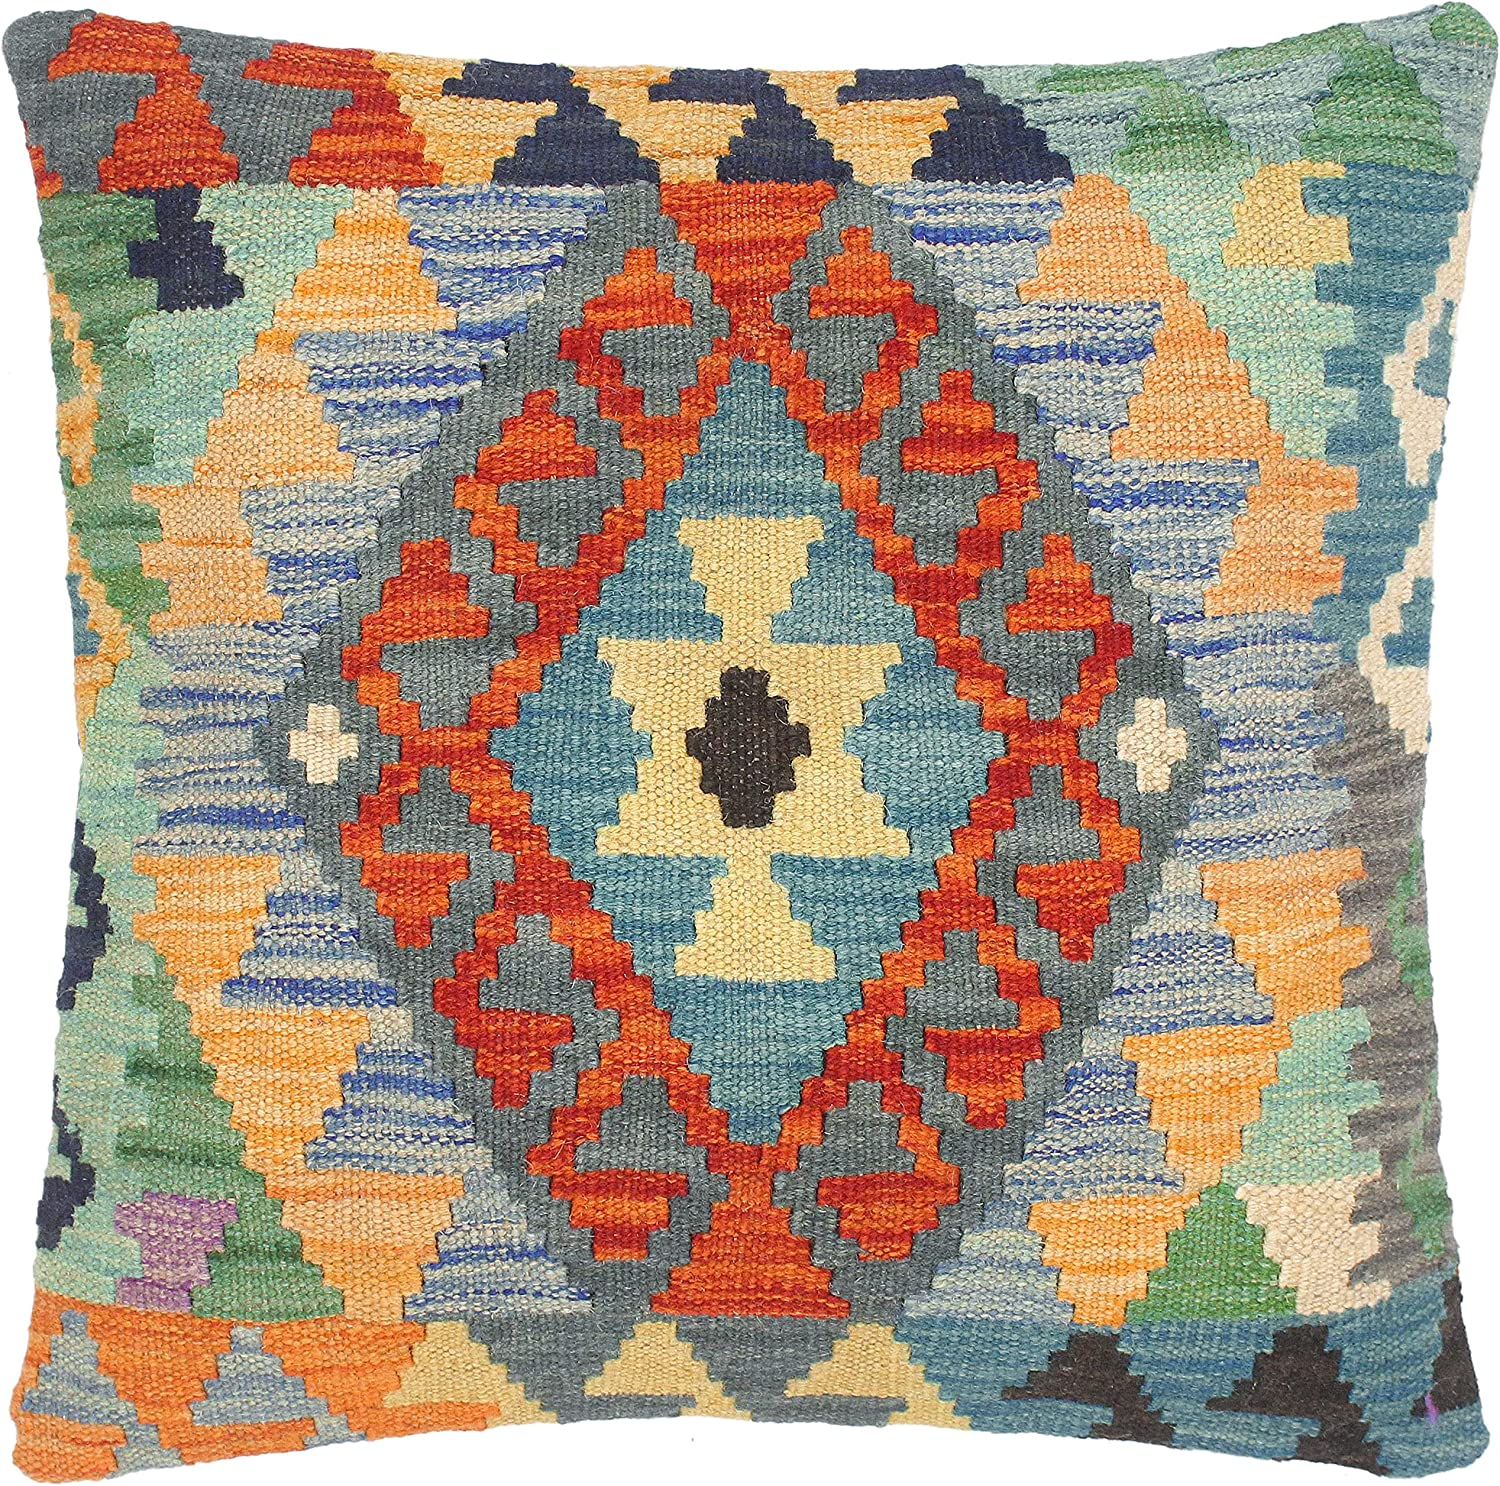 Sales of Attention brand SALE items from new works Geometric Turkish Jonelle Hand Kilim Woven Pillow Throw